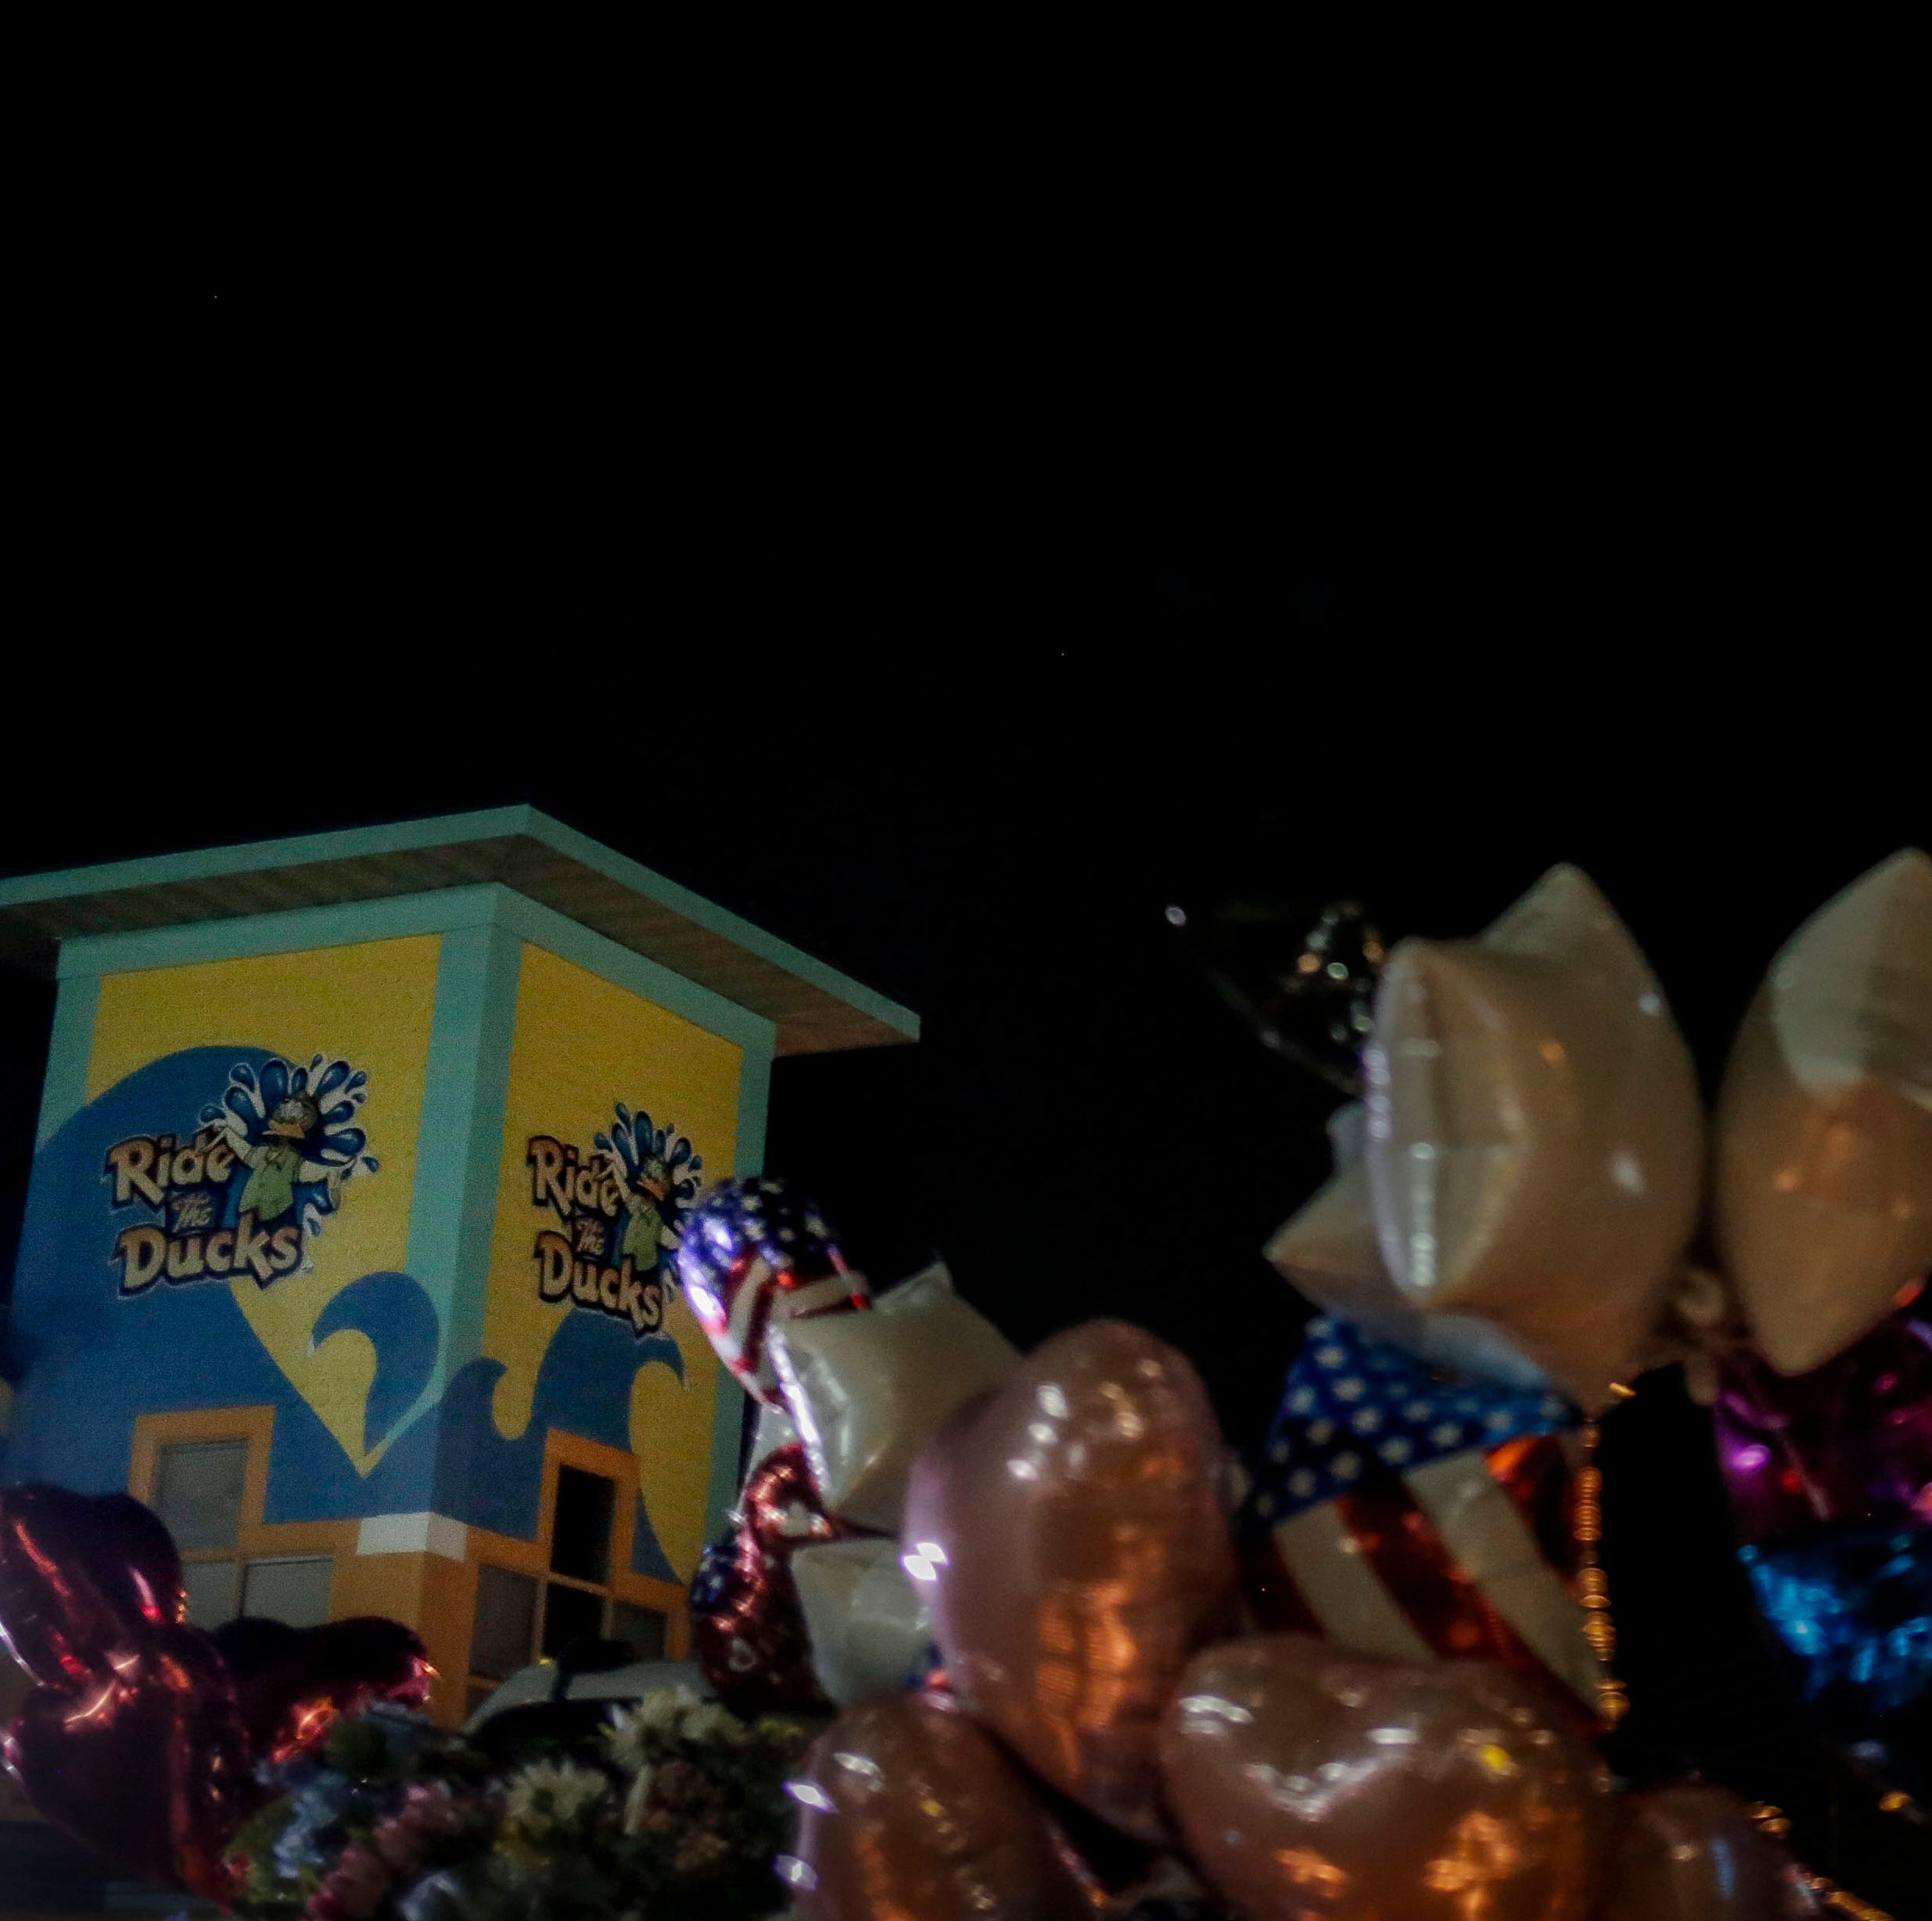 300 community members gathered in the parking lot outside Ride the Ducks, lighting candles and placing flowers on the cars of two victims from the duck boat accident in Branson, Mo. on Friday, July 20, 2018. On Thursday, July 19, 2018, 17 people were killed when a duck boat, an amphibious vehicle, capsized on Table Rock Lake.